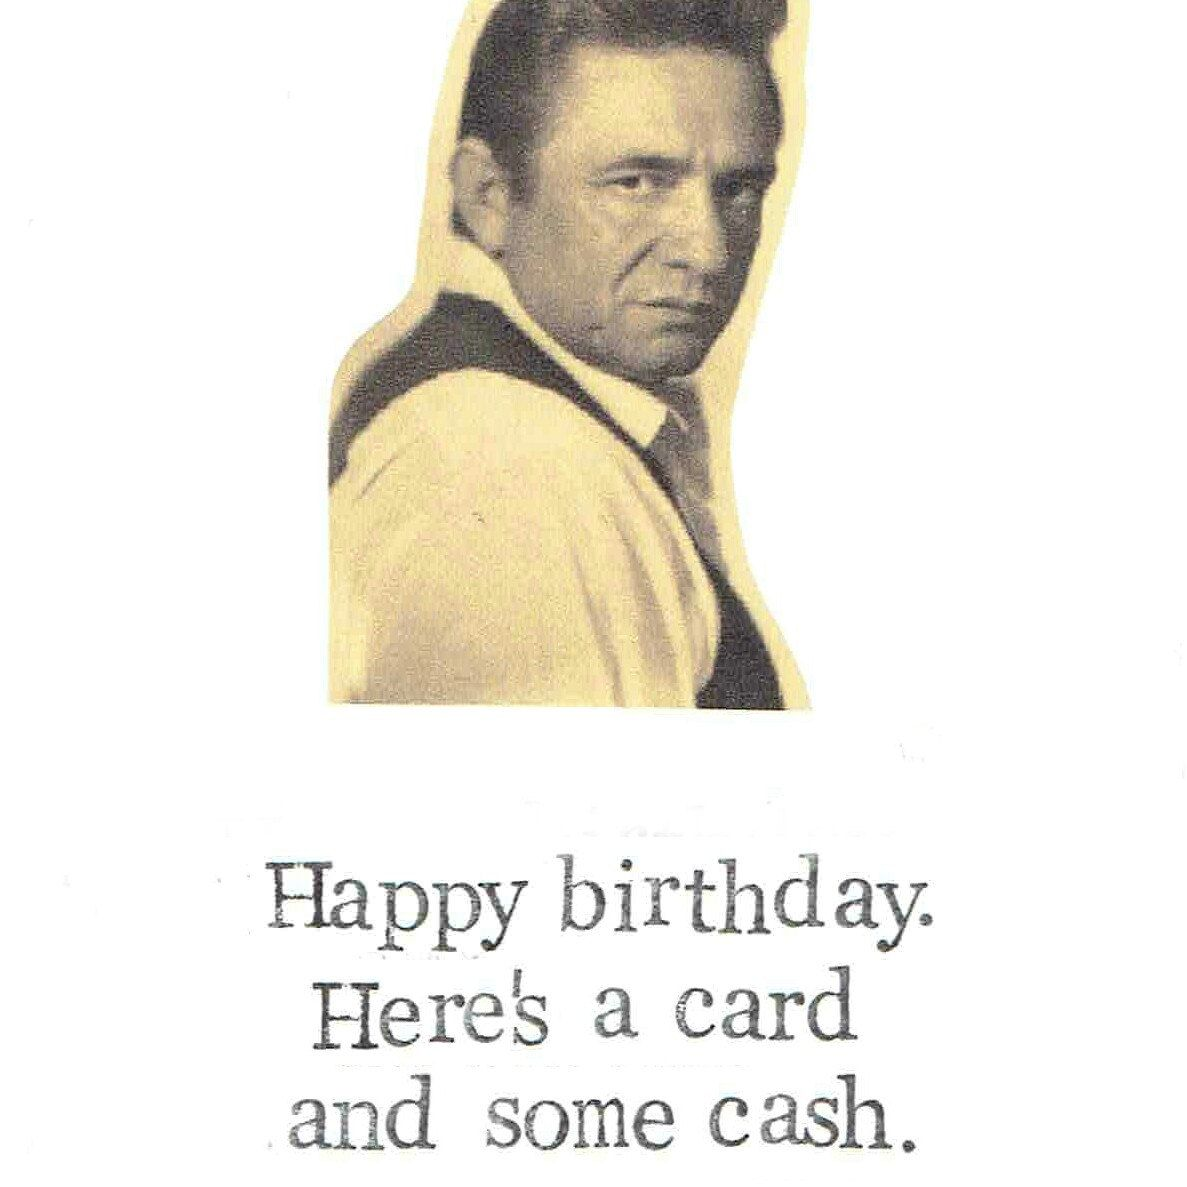 A Card And Some Cash Birthday Card – Bruce Springsteen Birthday Card